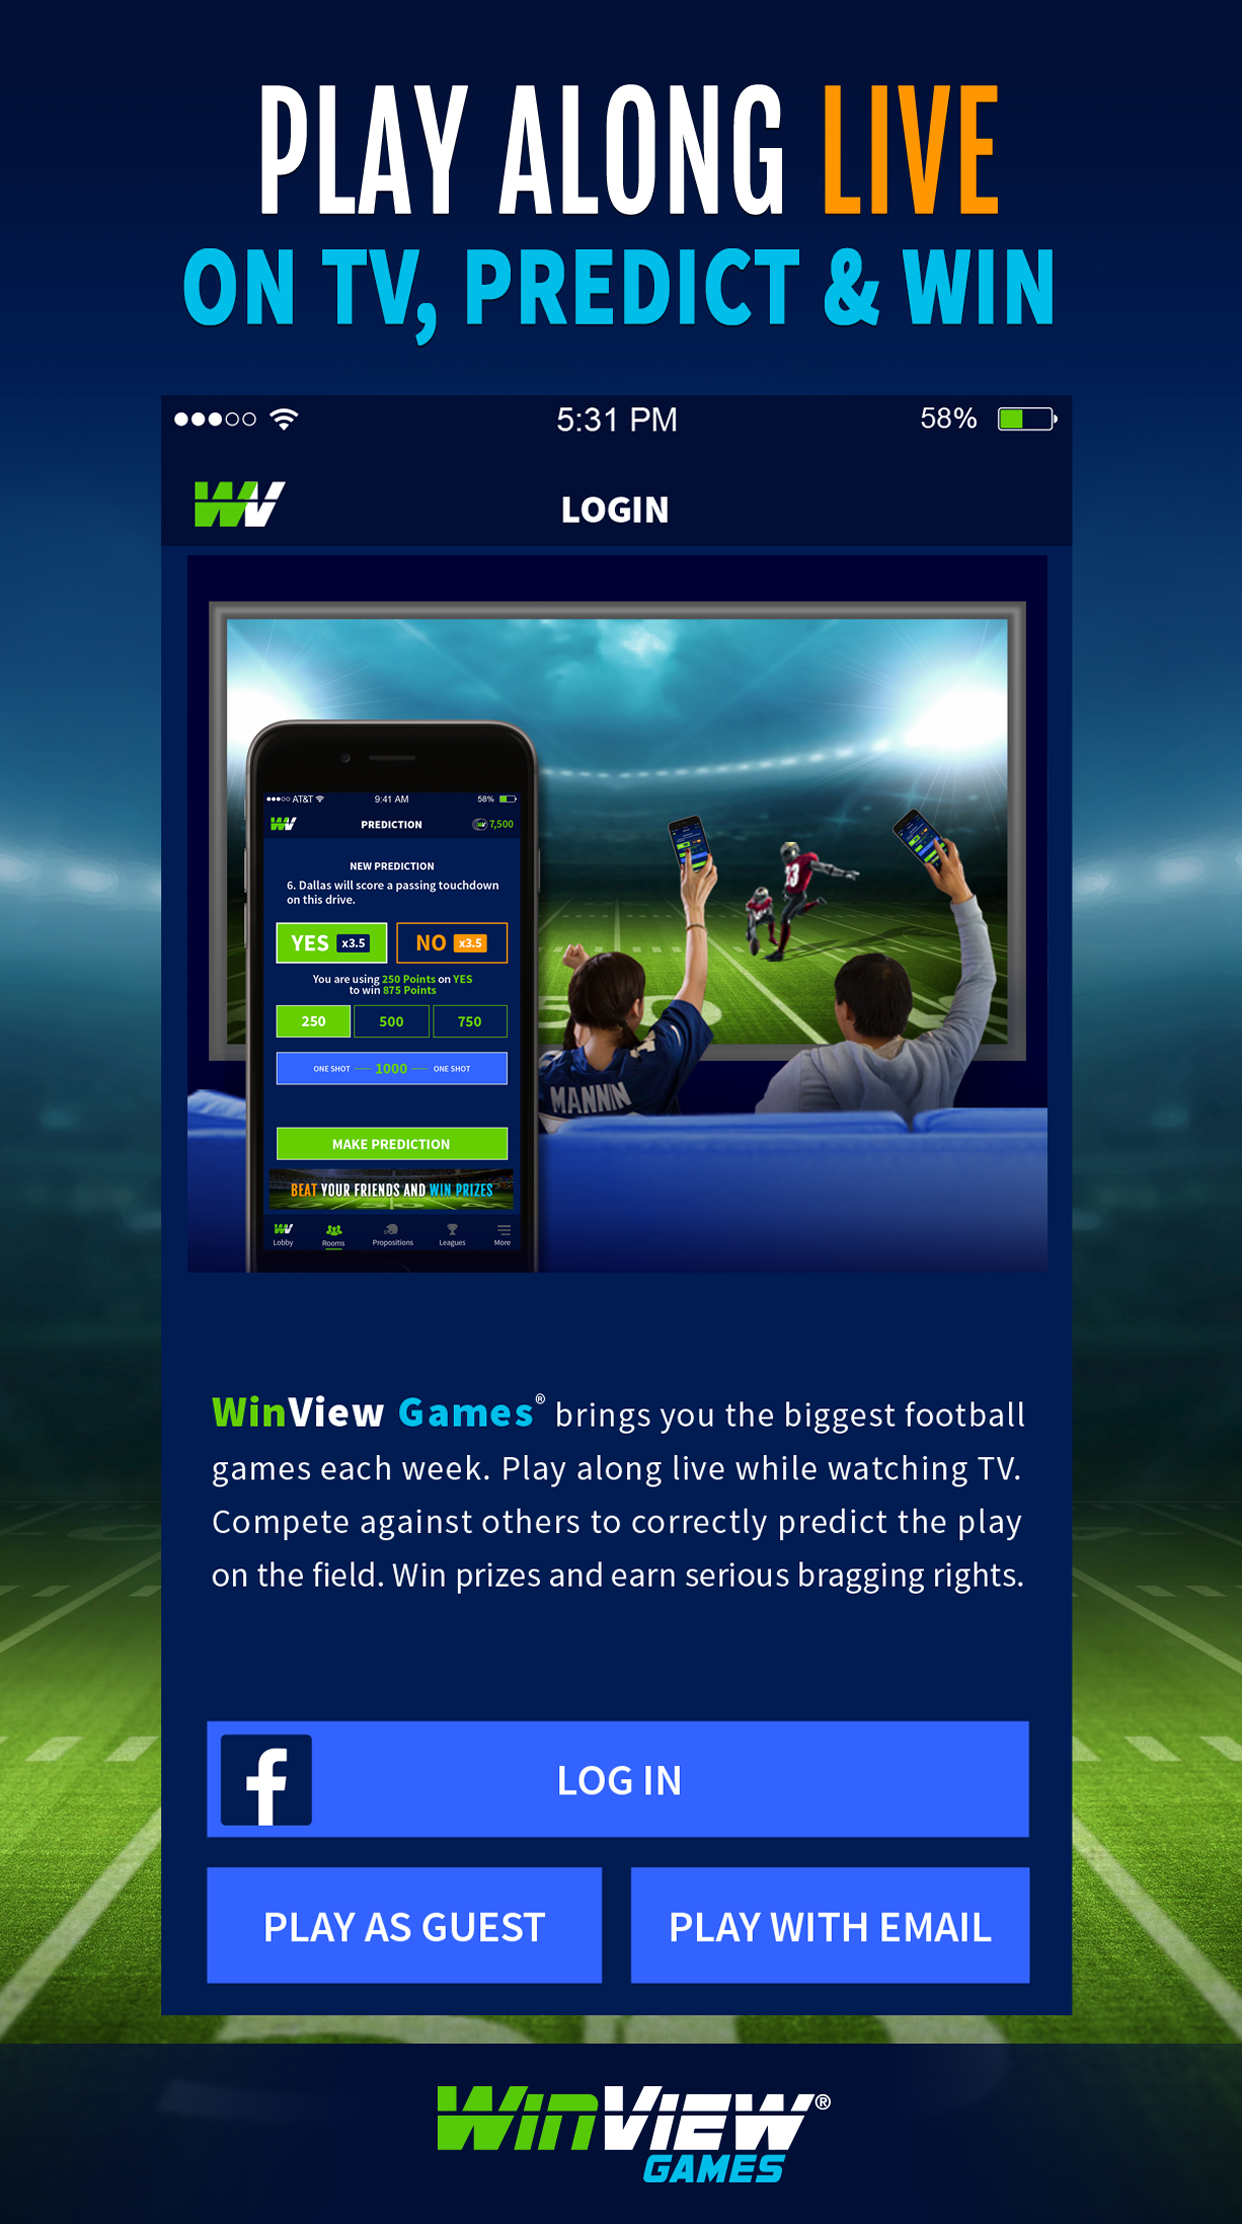 WinView Games Live Football Prediction Game Launches For Football Fans - SportsTechie blog.